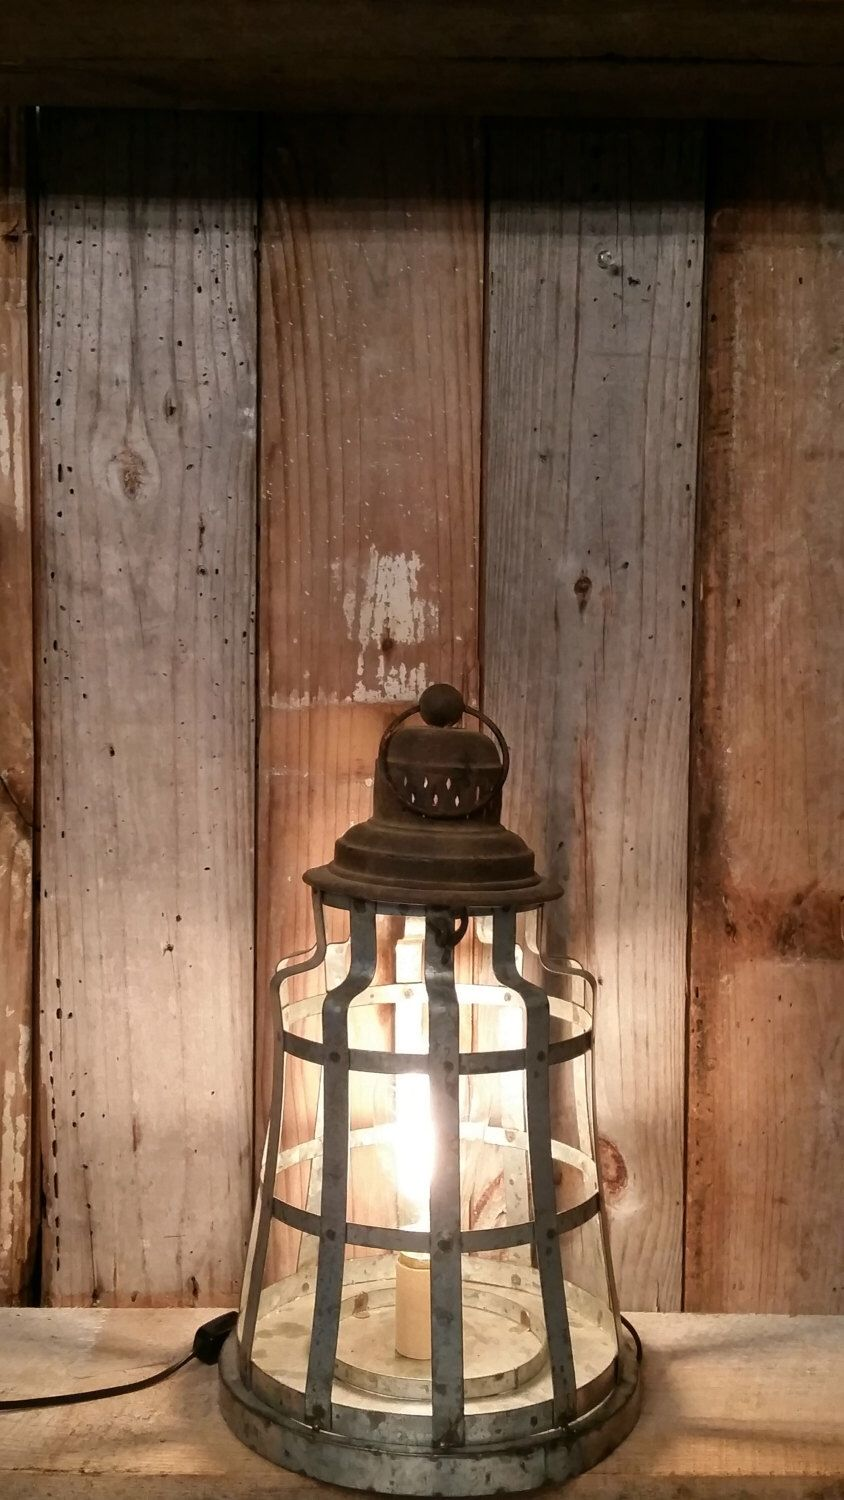 Shabby Chic Rustic Metal Lamp Industrial Photo Prop Home